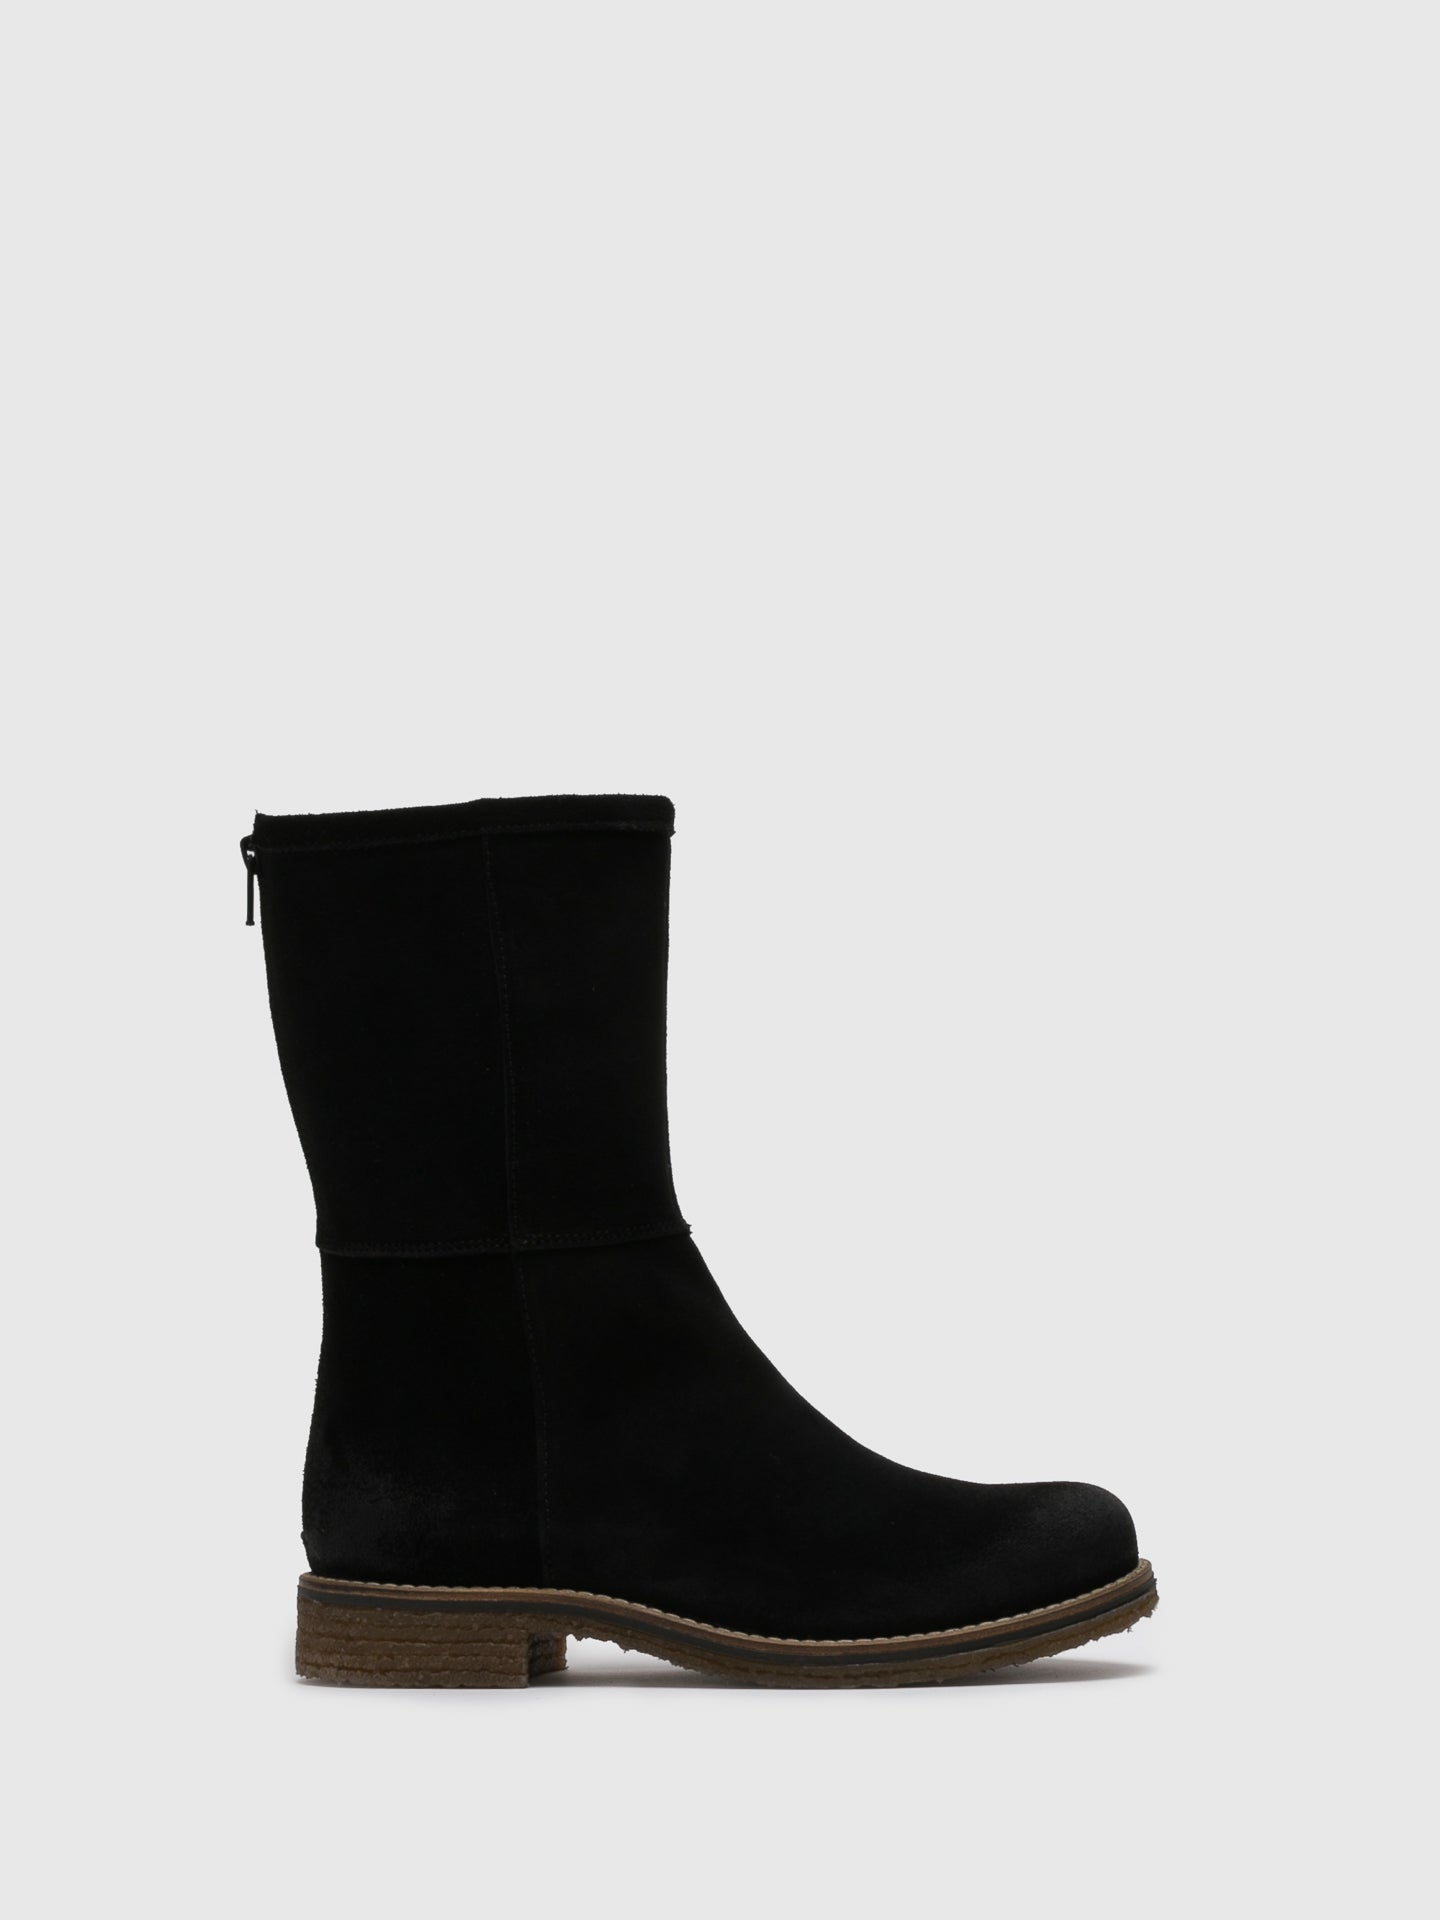 Bos&Co Black Suede Zip Up Boots